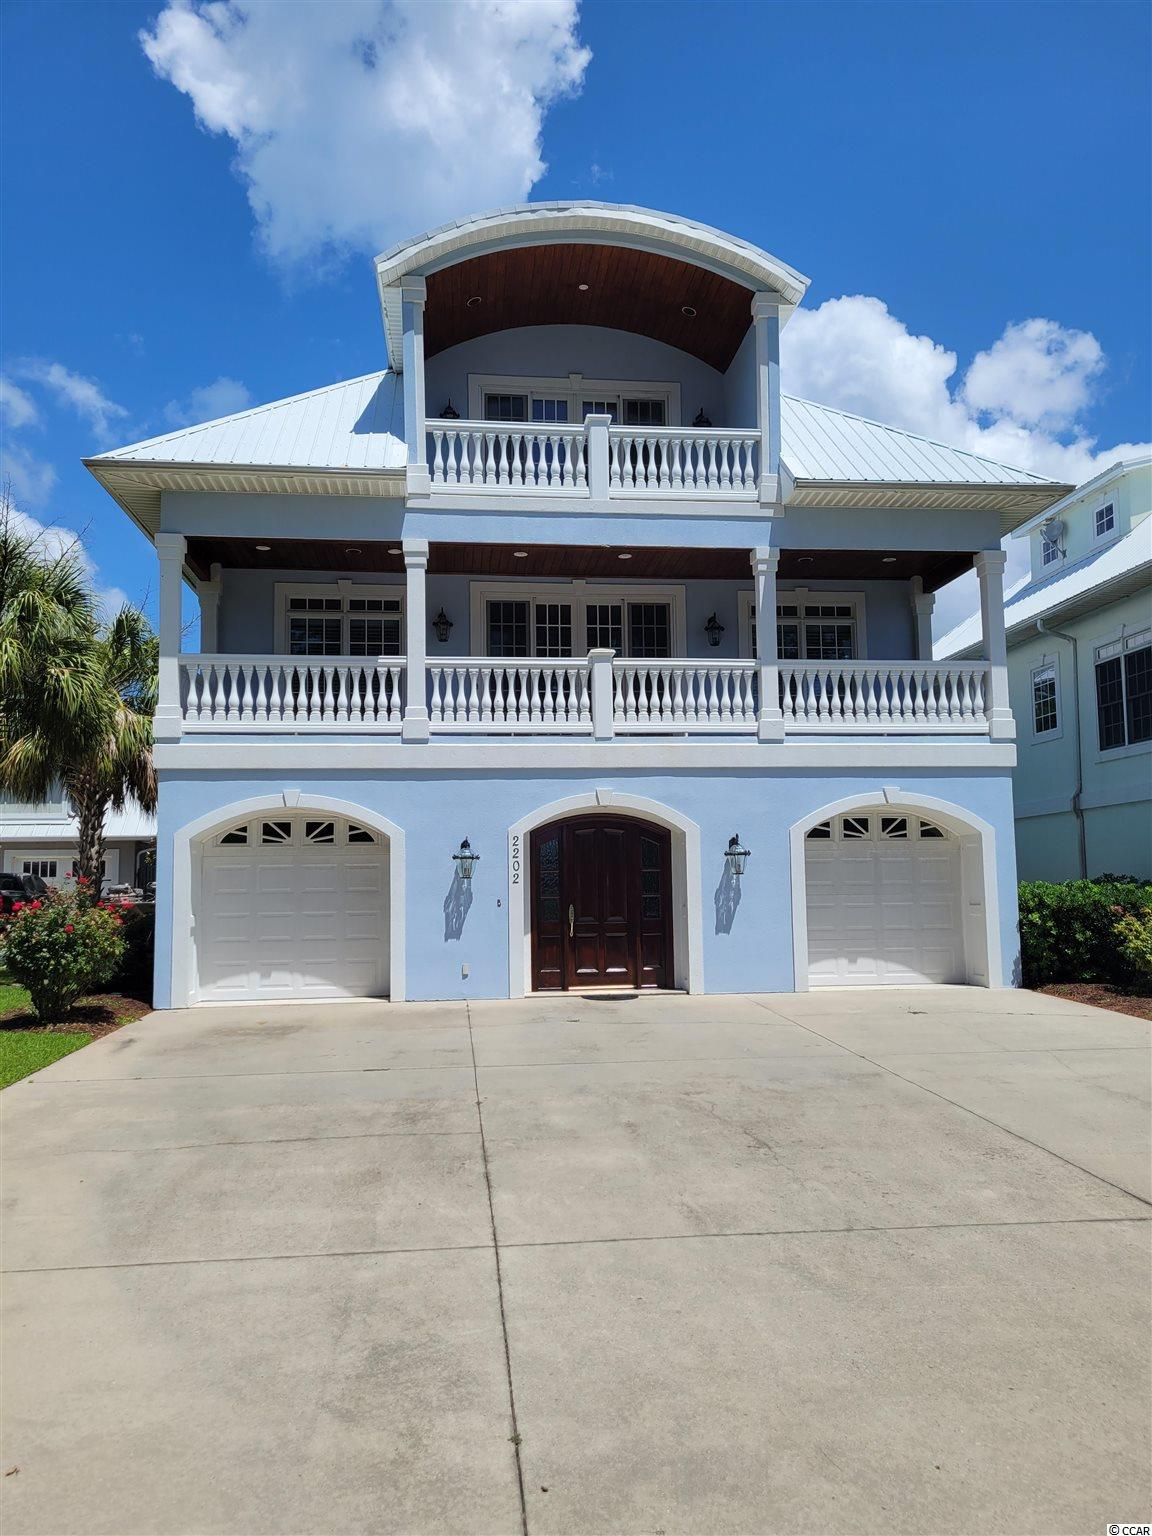 5BR / 4BA raised beach style home with peak view of ocean and community pool on quiet street with large beach access 5 min walk / 2 min golf cart ride away. Home features garage space and 2 bedrooms with full bath on ground floor / main floor has great room , kitchen, dining, 2 bedrooms and 2 baths / top floor is dedicated to master suite.